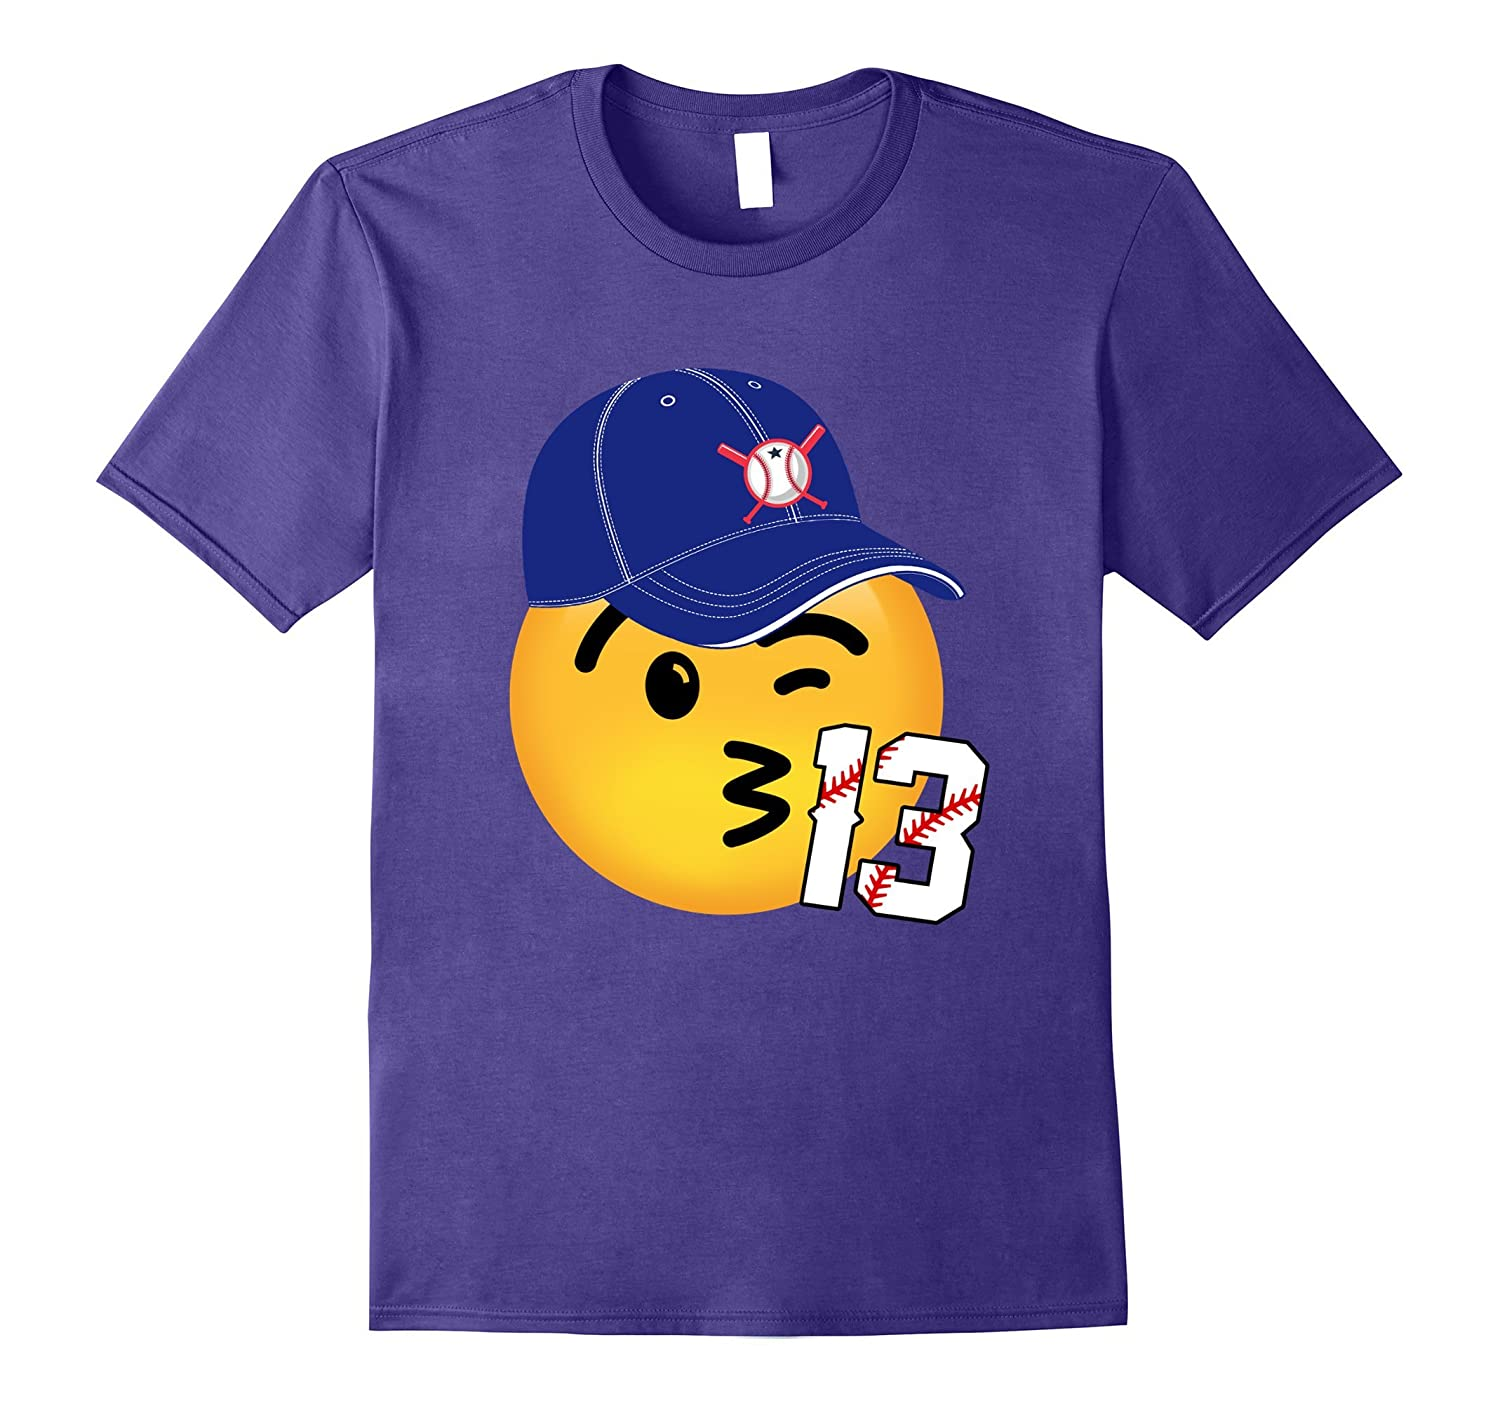 13th birthday baseball emoji shirt-CD